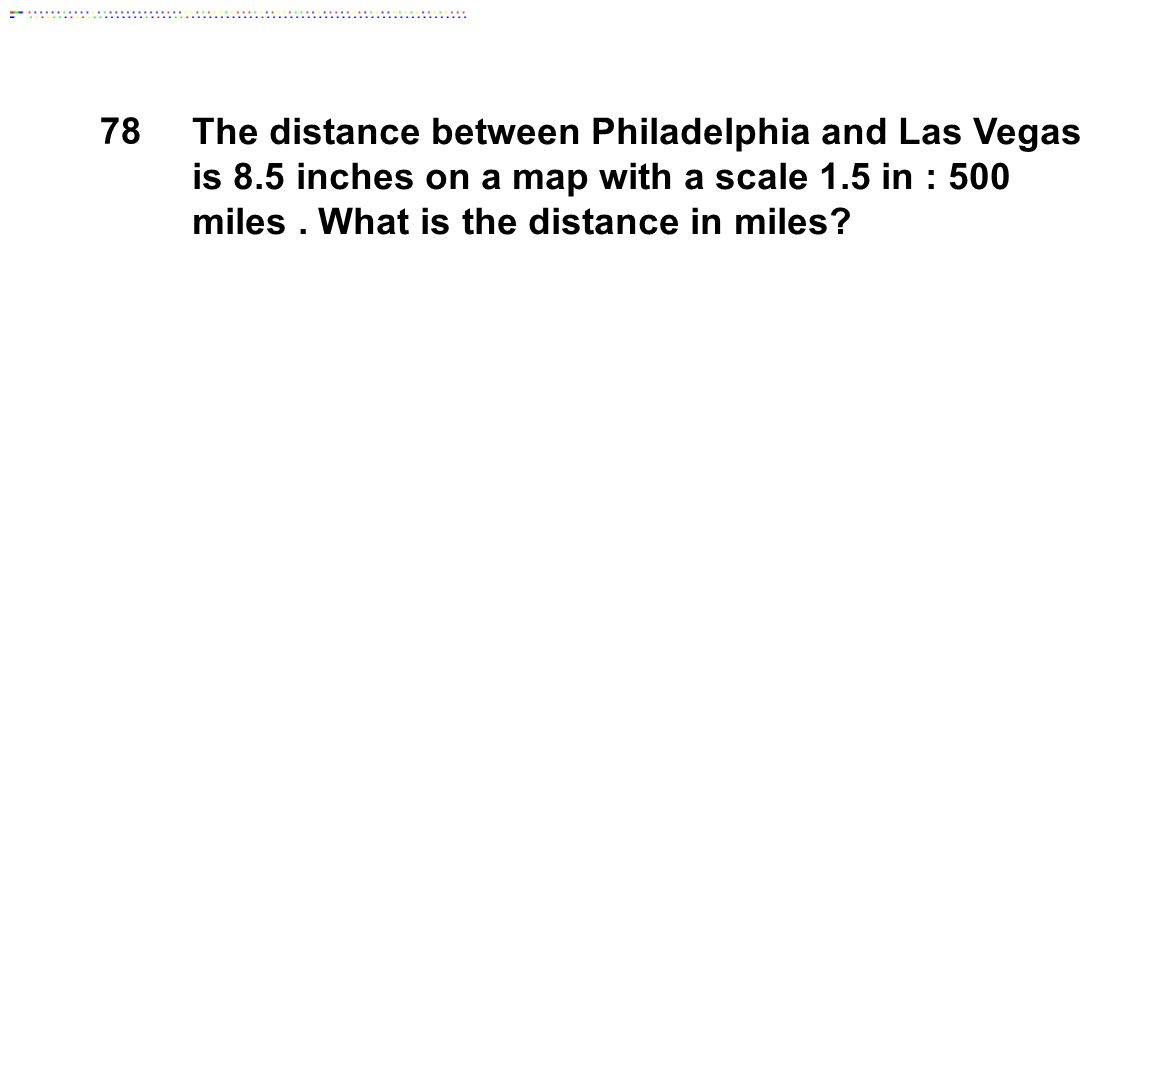 78 The distance between Philadelphia and Las Vegas is 8.5 inches on a map with a scale 1.5 in : 500 miles . What is the distance in miles